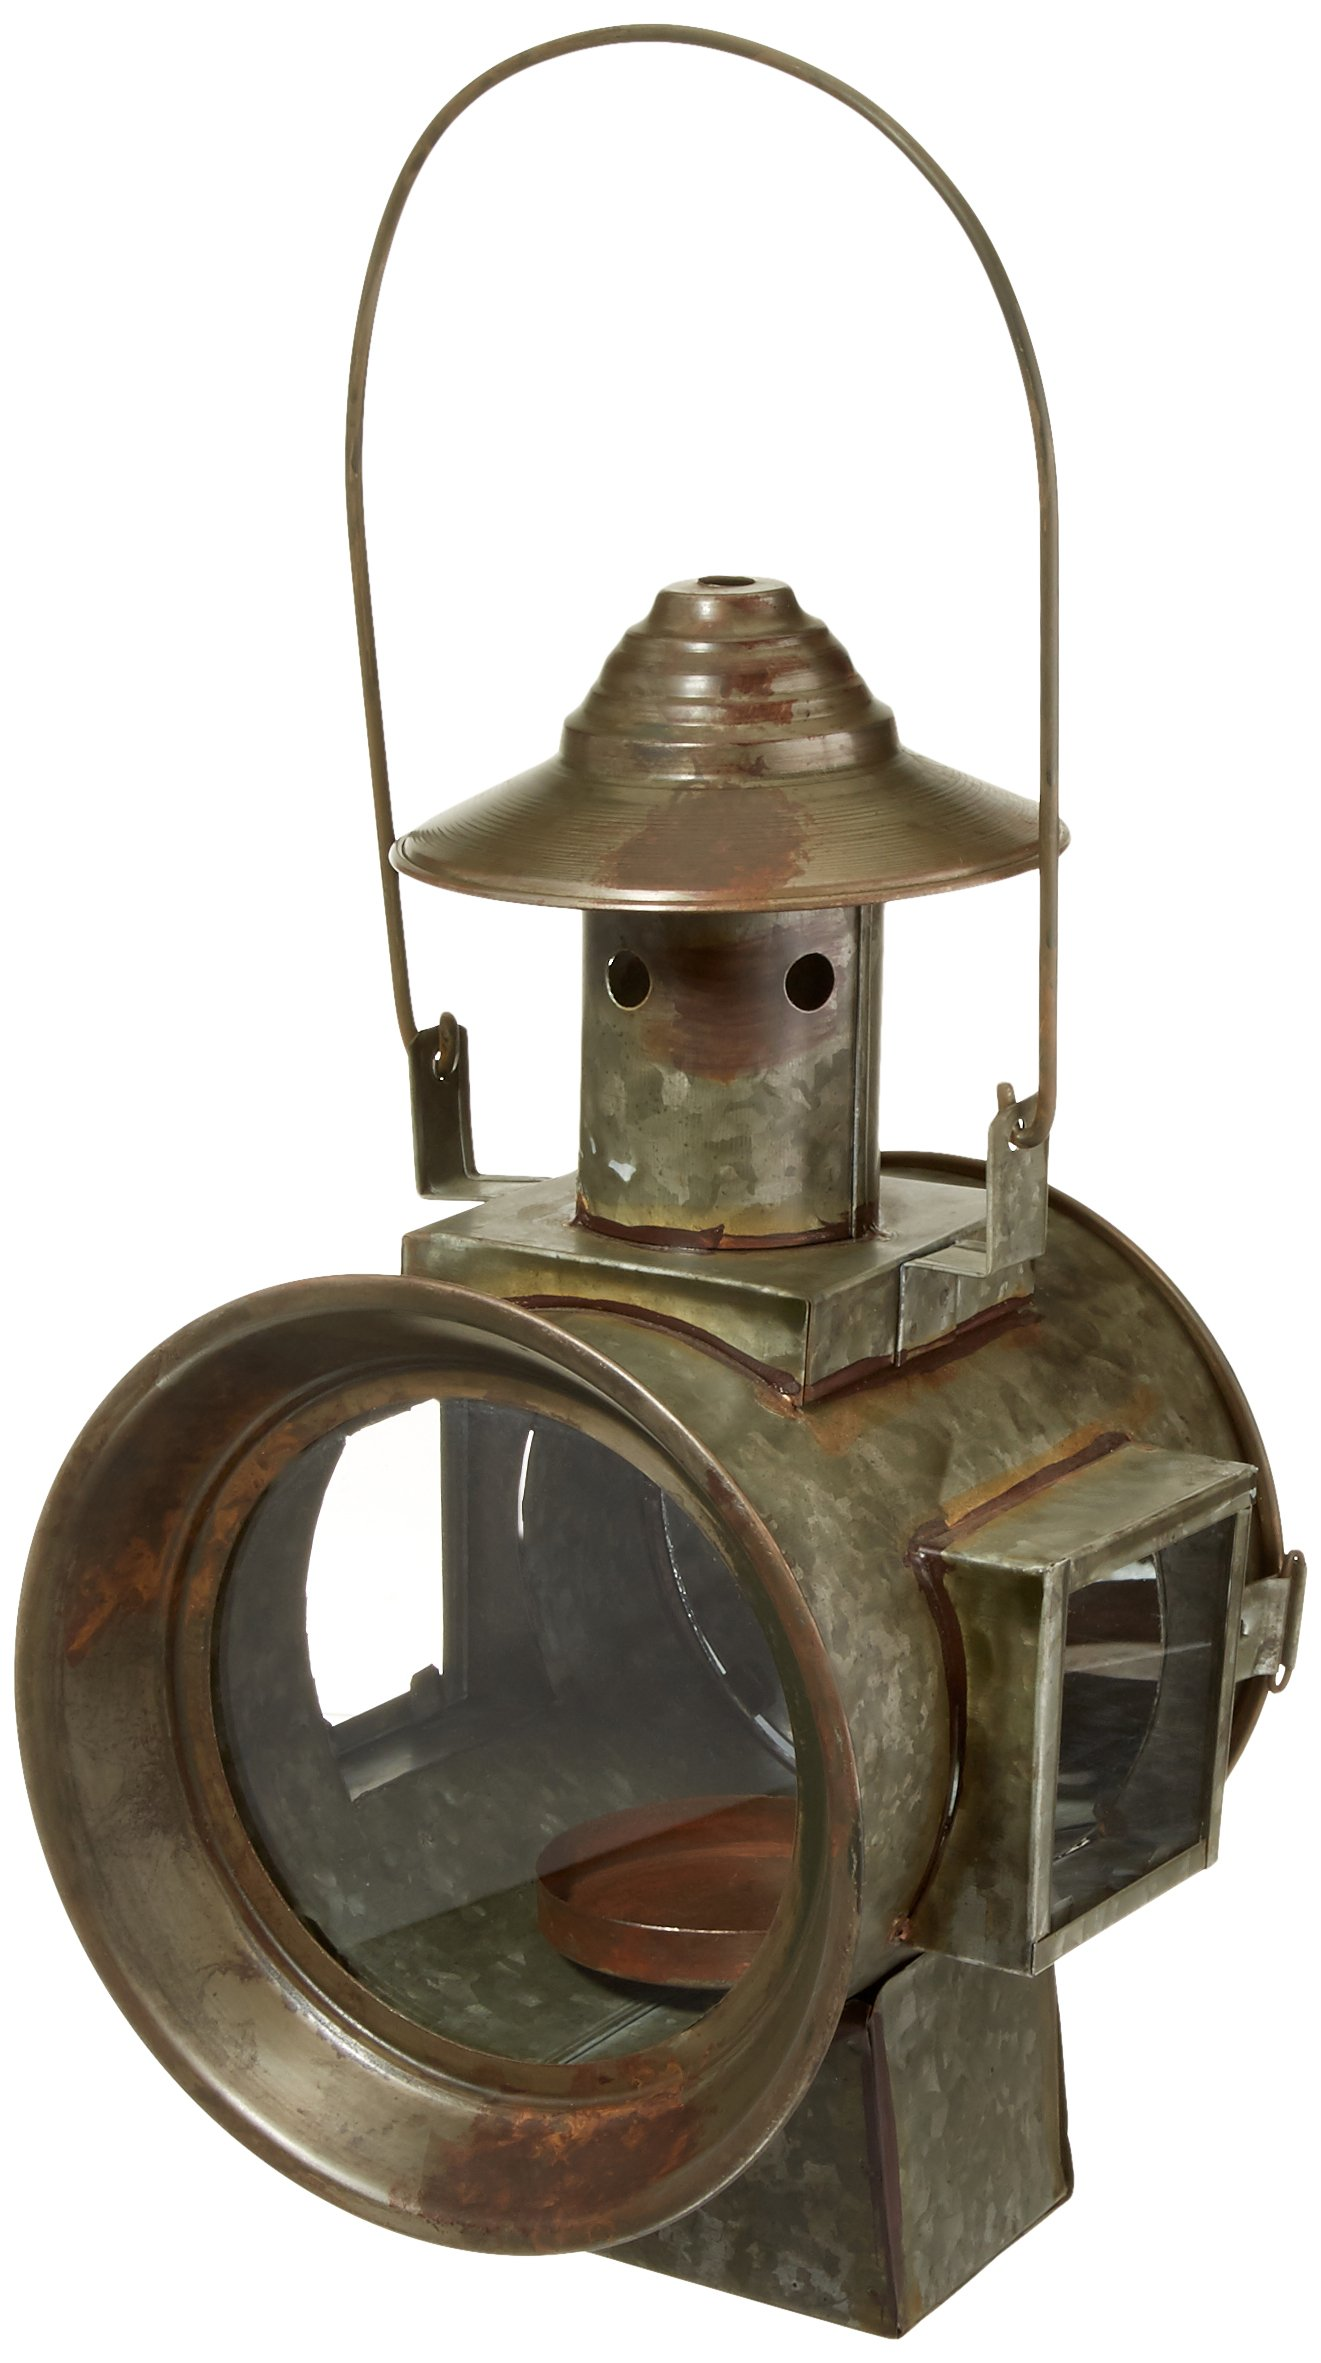 Your Heart's Delight Railroad Light Candle Holder Lantern, 7-1/2 by 13-1/2 by 10-Inch